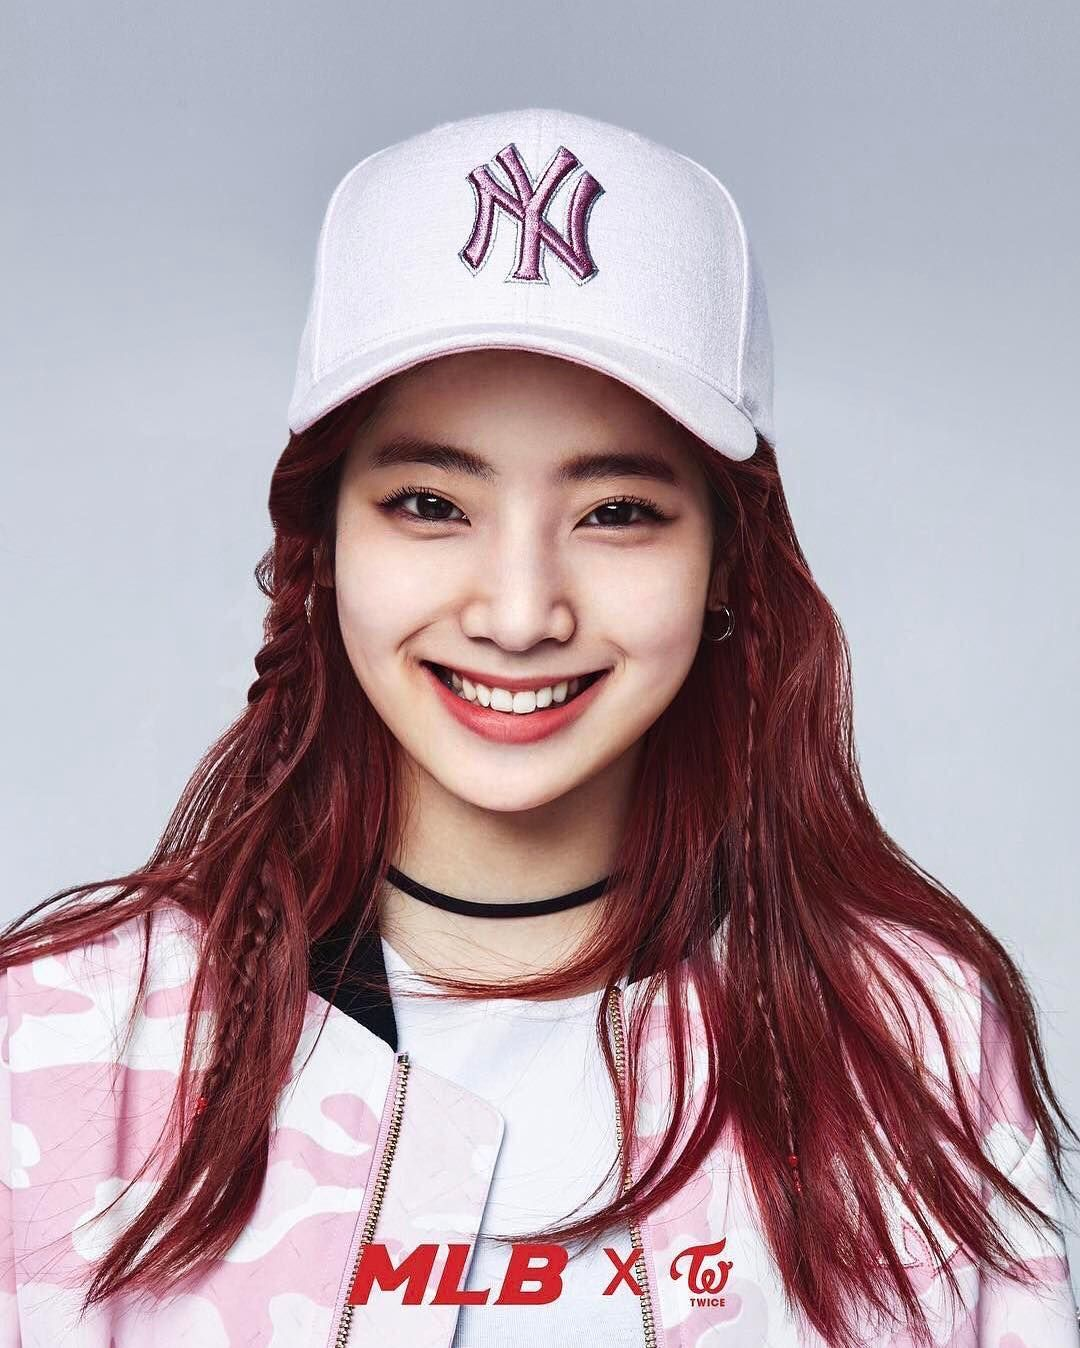 Dahyun Twice Kpop Girls Twice Mlb